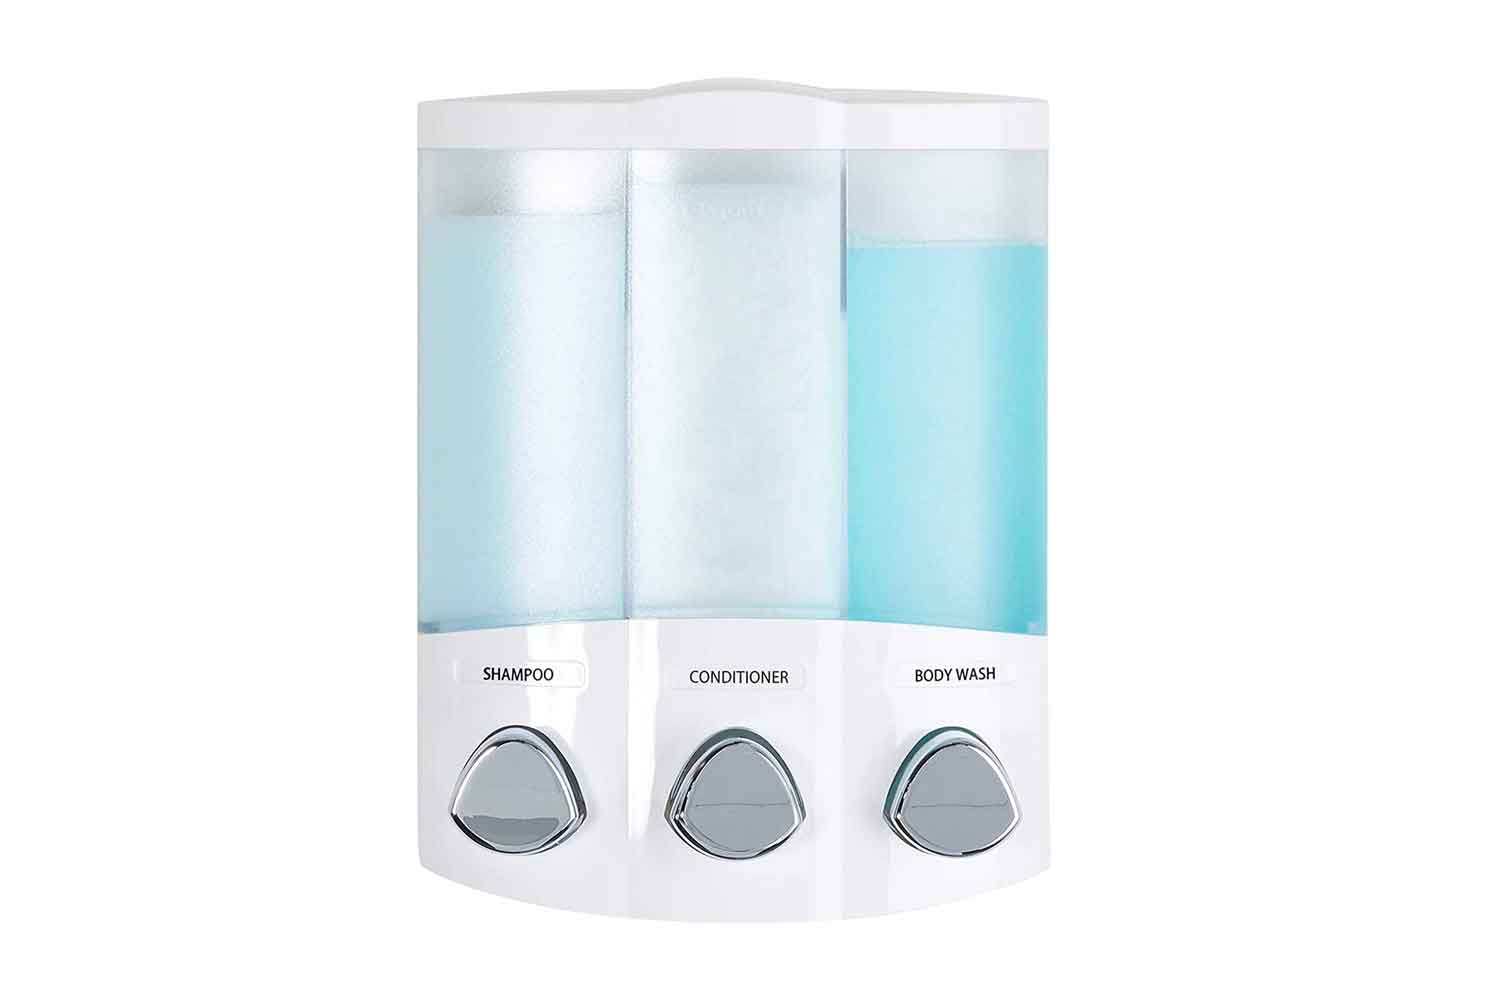 Better Living Products, White Euro Series TRIO 3-Chamber Soap and Shower Dispenser